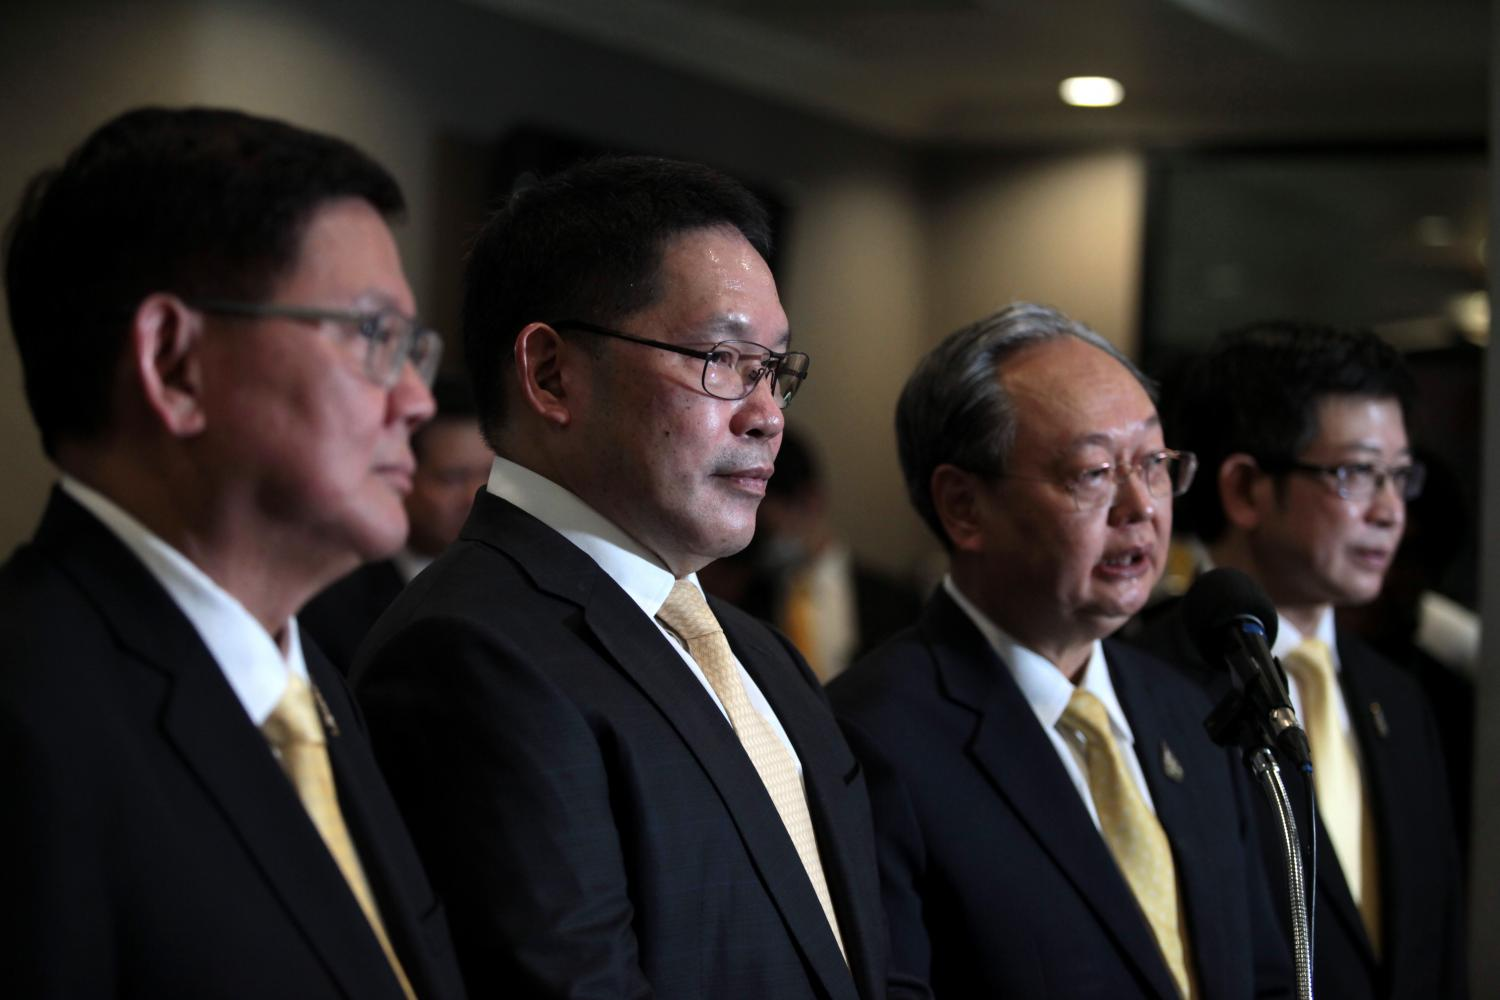 Uttama Savanayana, second left, and his team resign from the cabinet earlier this week amid rising pressure from a powerful faction in the ruling Palang Pracharath Party.(Photo by Chanat Katanyu)